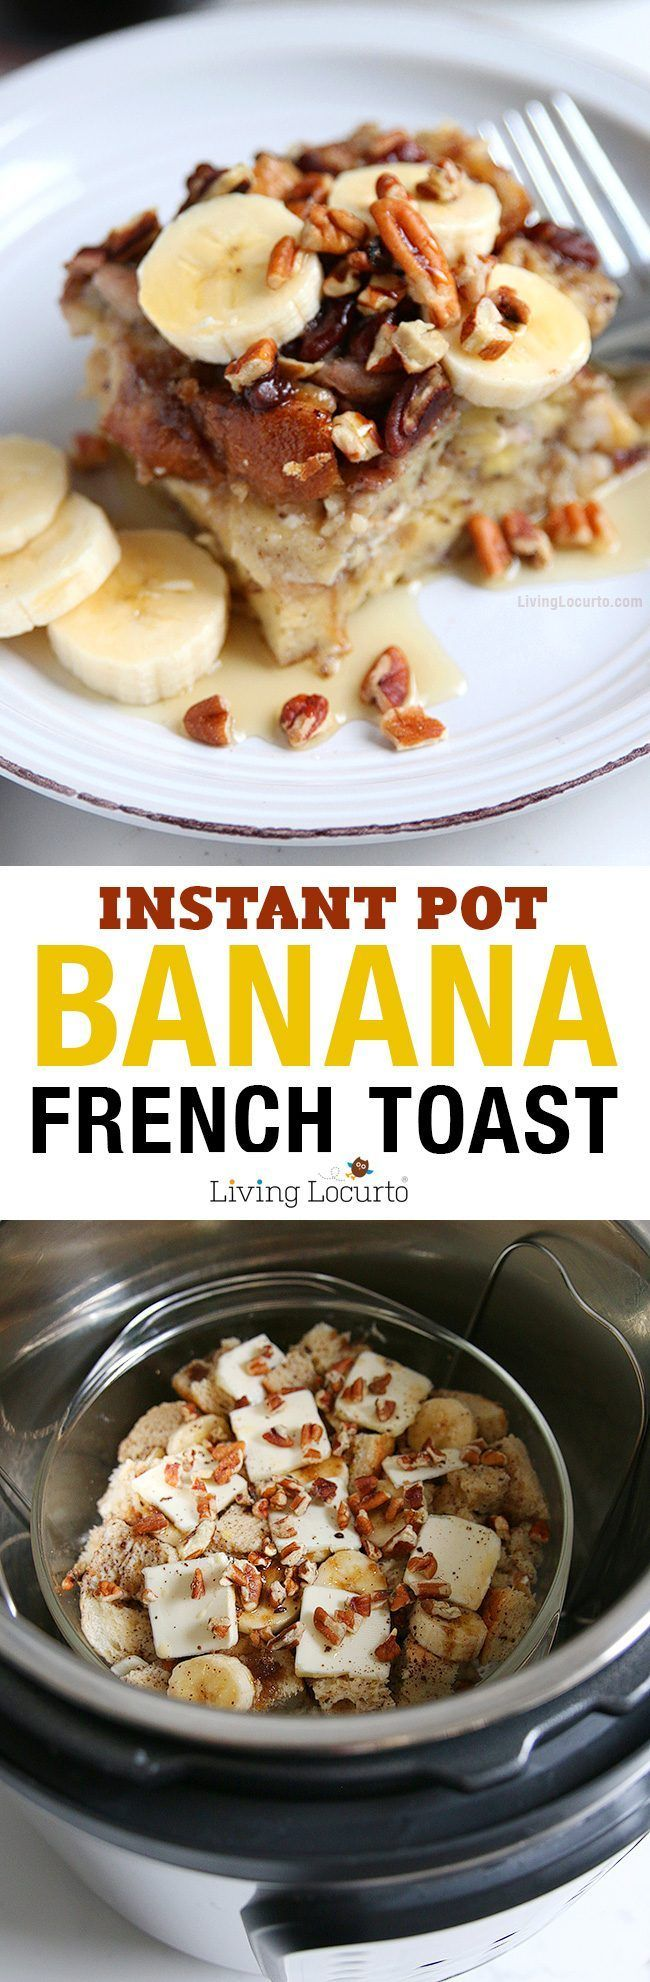 Easy One Pot Meal - Instant Pot Banana French Toast Recipe! How to make french toast in an Instant Pot! This easy Cream Cheese Banana French Toast Recipe is a fast way to make breakfast in a pressure cooker. Instapot recipe. LivingLocurto.com